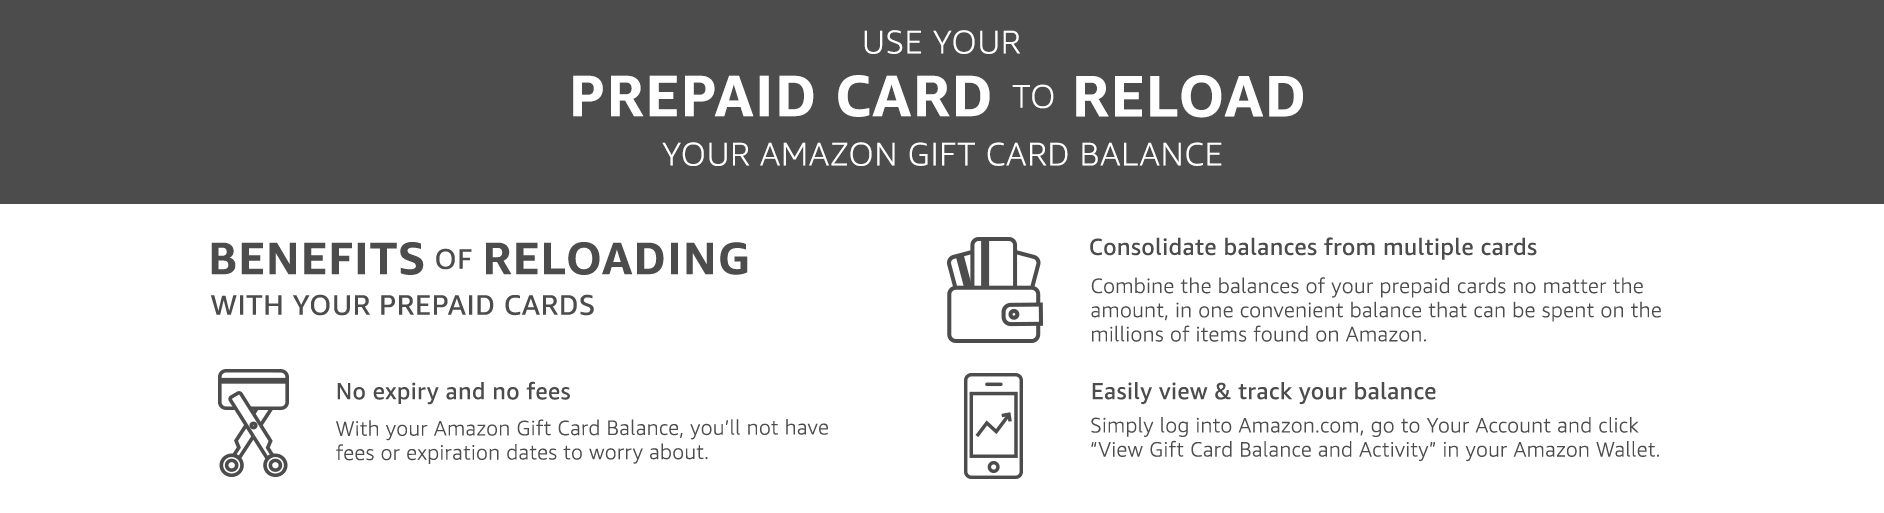 Use Your Prepard Card To Reload Your Amazon Gift Card Balance